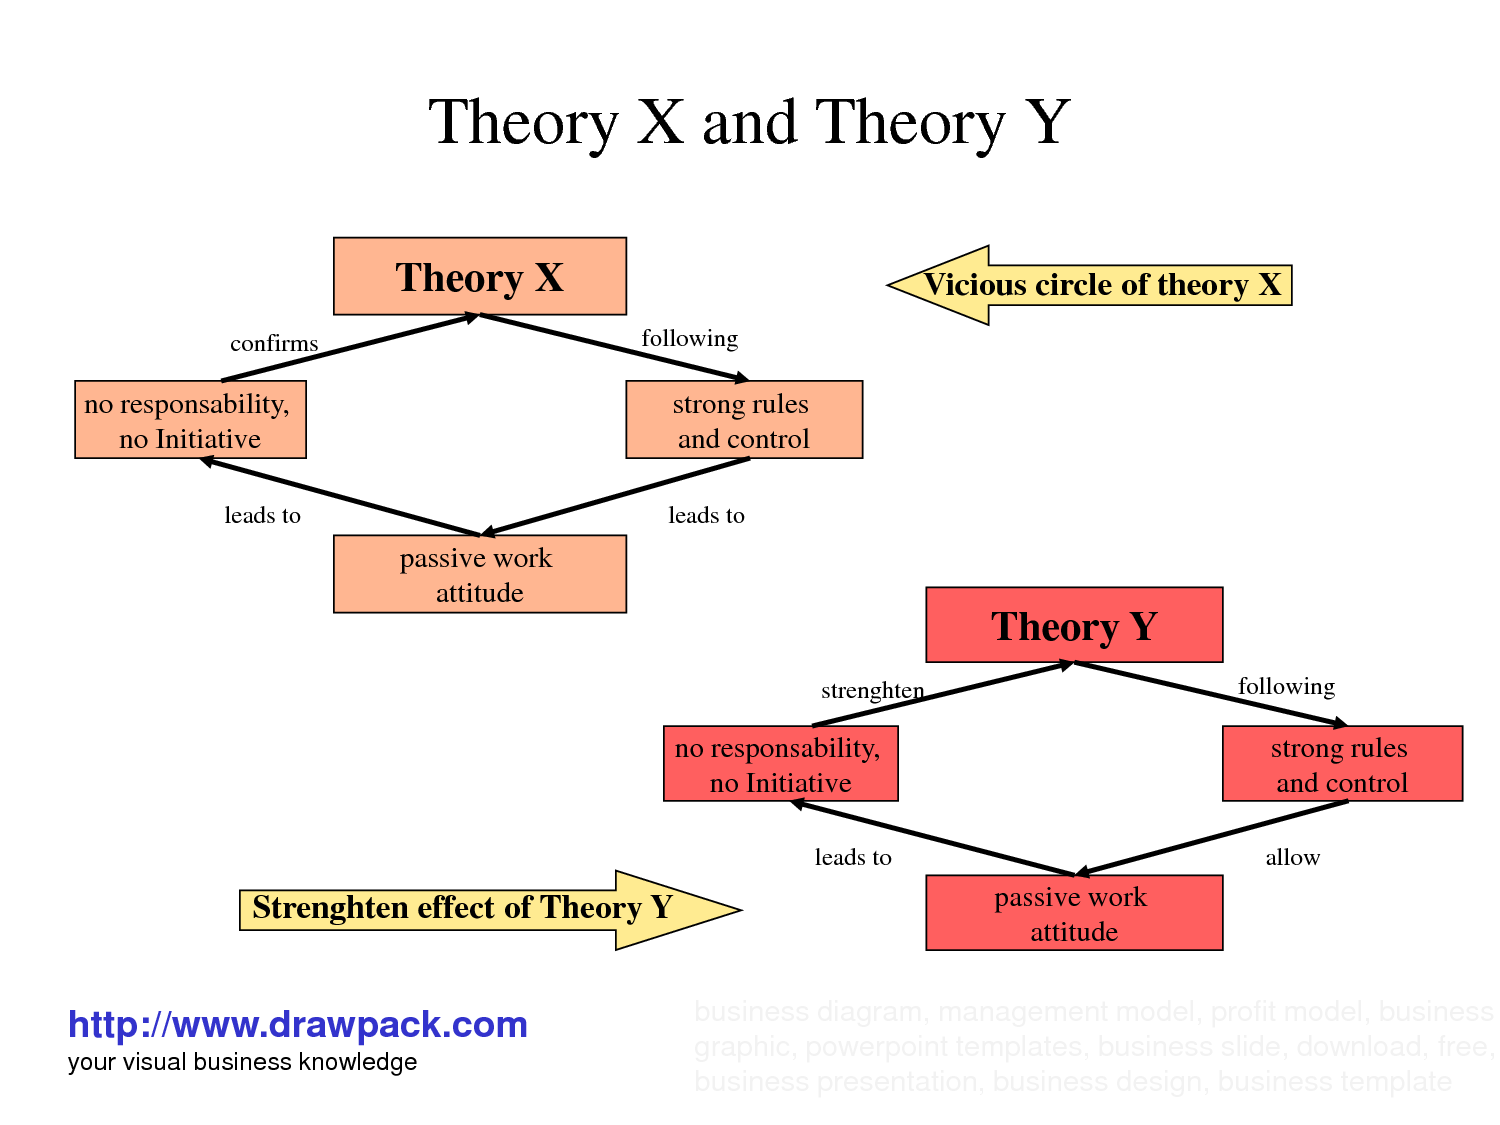 a descriptive analysis of douglas mcgregors theory of x and theory of y Theory x and theory y explains how your perceptions can affect your  in the  1960s, social psychologist douglas mcgregor developed two contrasting  theories.